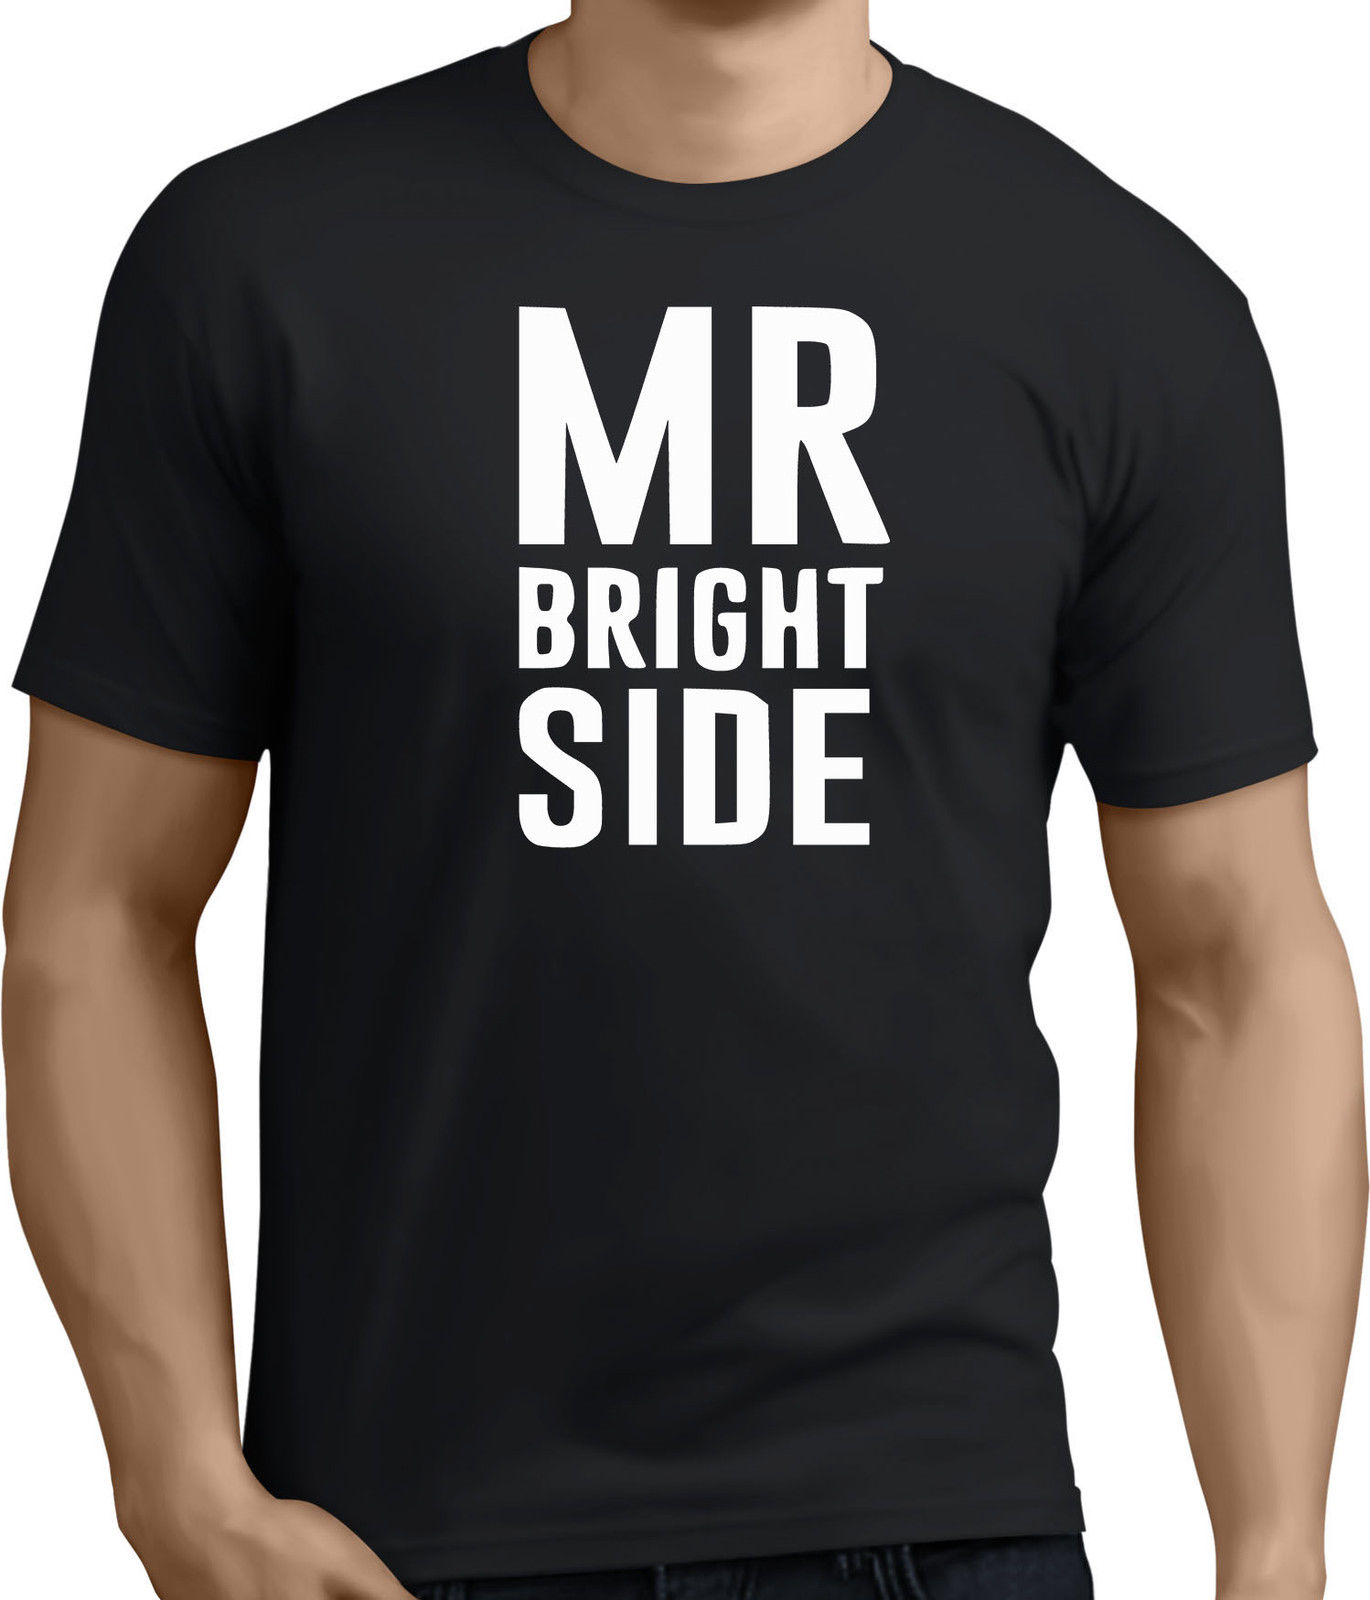 Mr bright side...Funny, slogan and unisex t-shirts! RT361 New T Shirts Funny Tops Tee Unisex